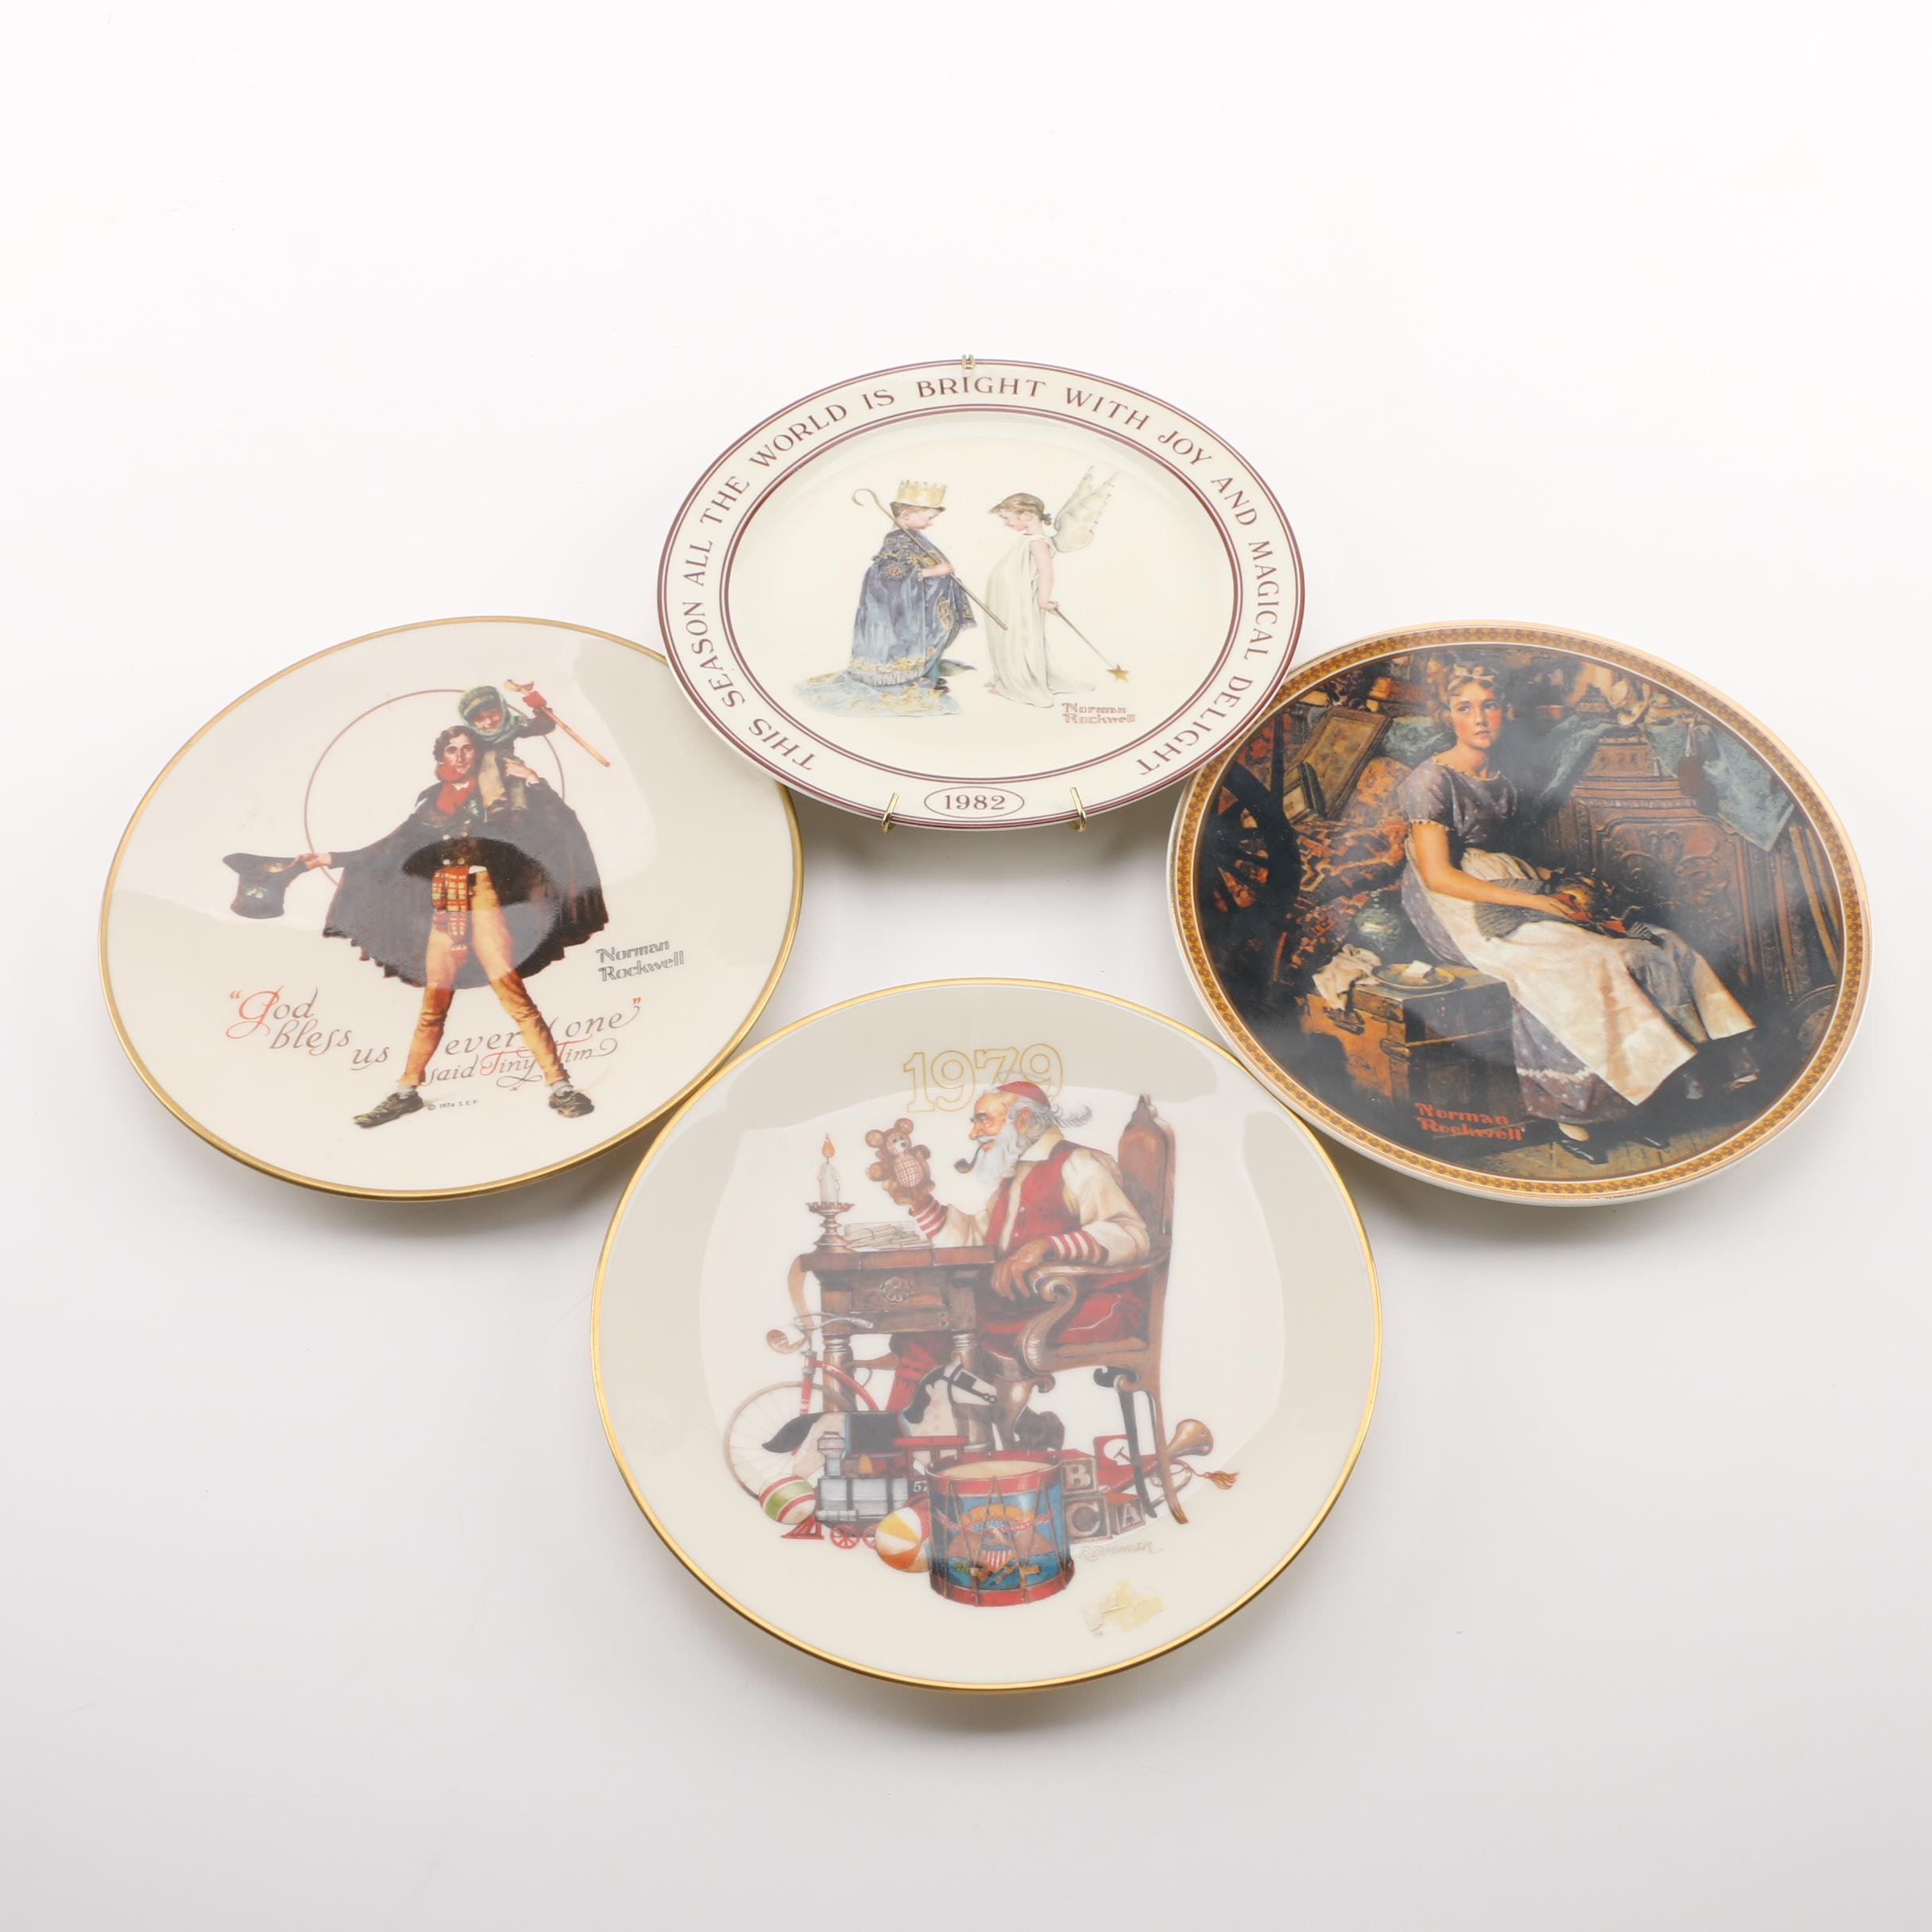 Knowles, Gorham and Hallmark Plates Featuring Art by Norman Rockwell